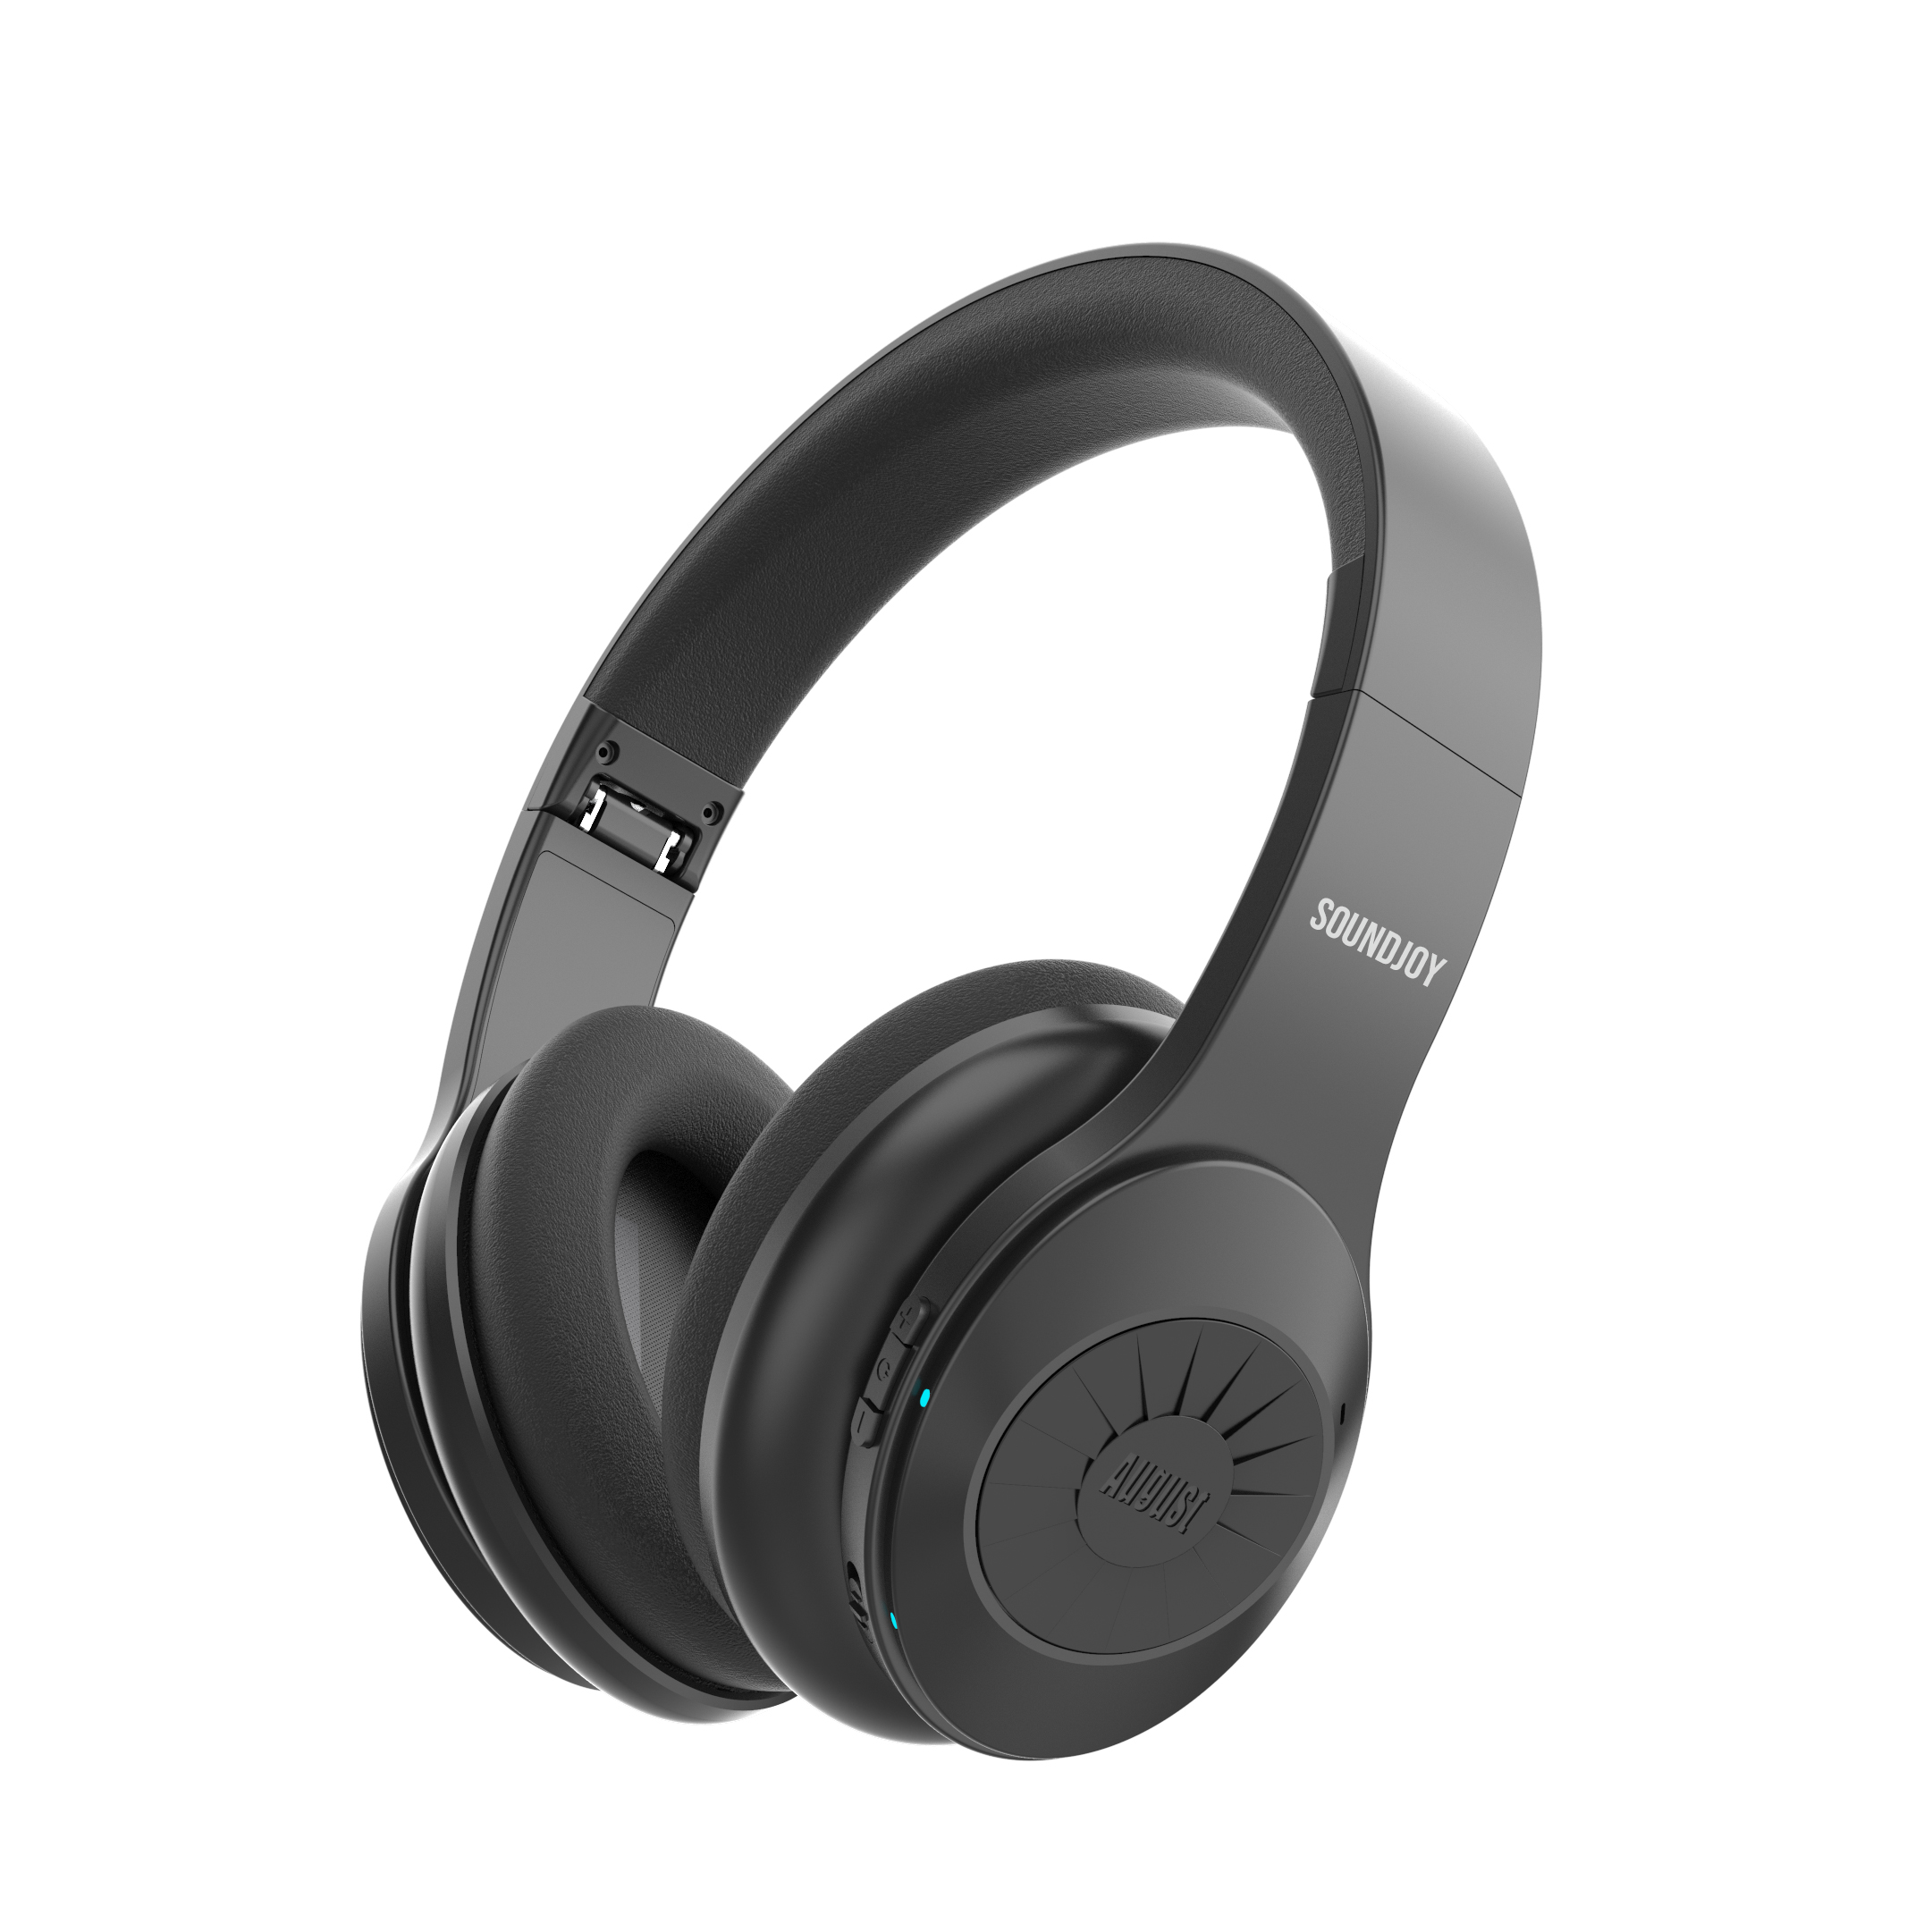 EP765 Active Noise Cancelling Bluetooth Headphones